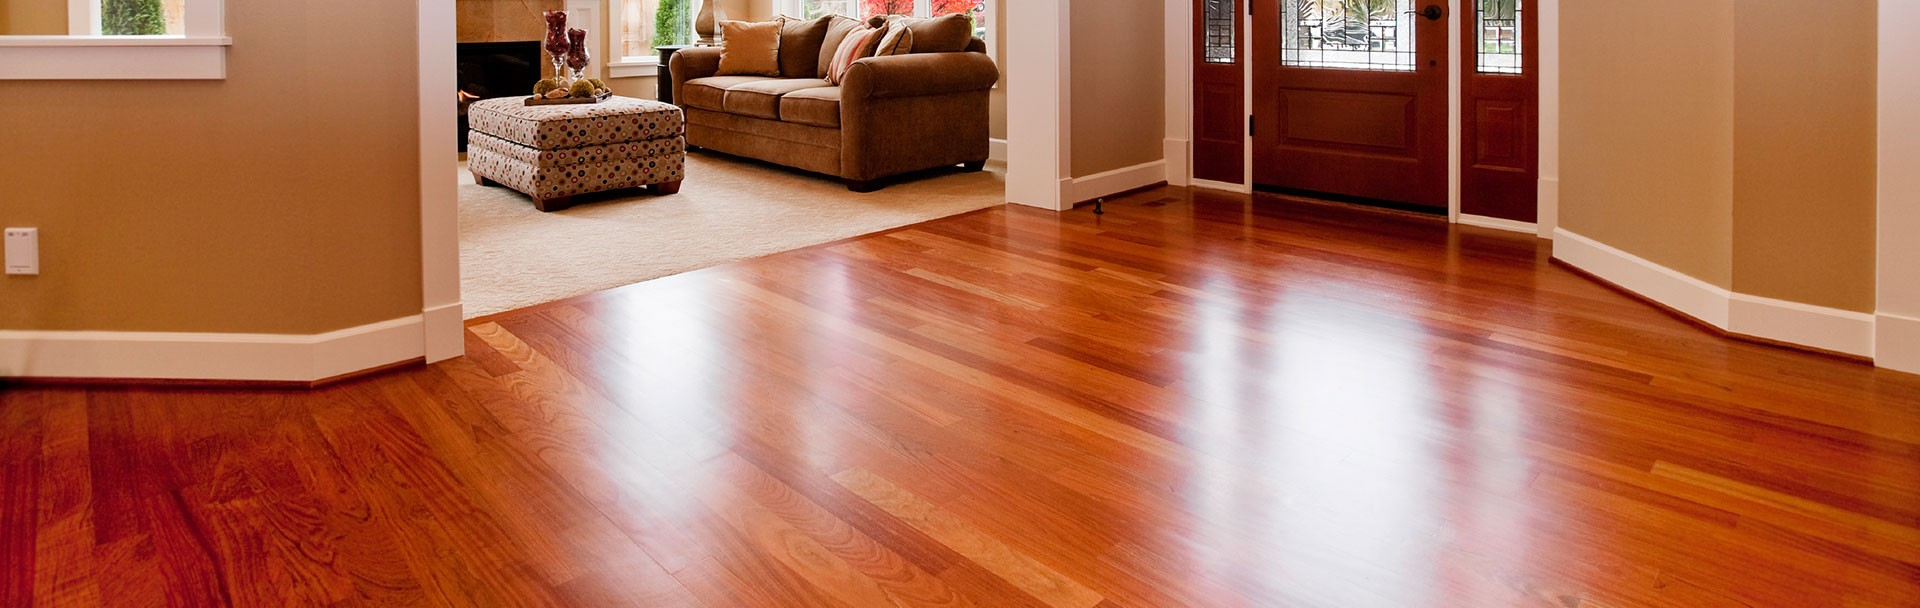 Hardwood Floors Premier Hardwood Flooring